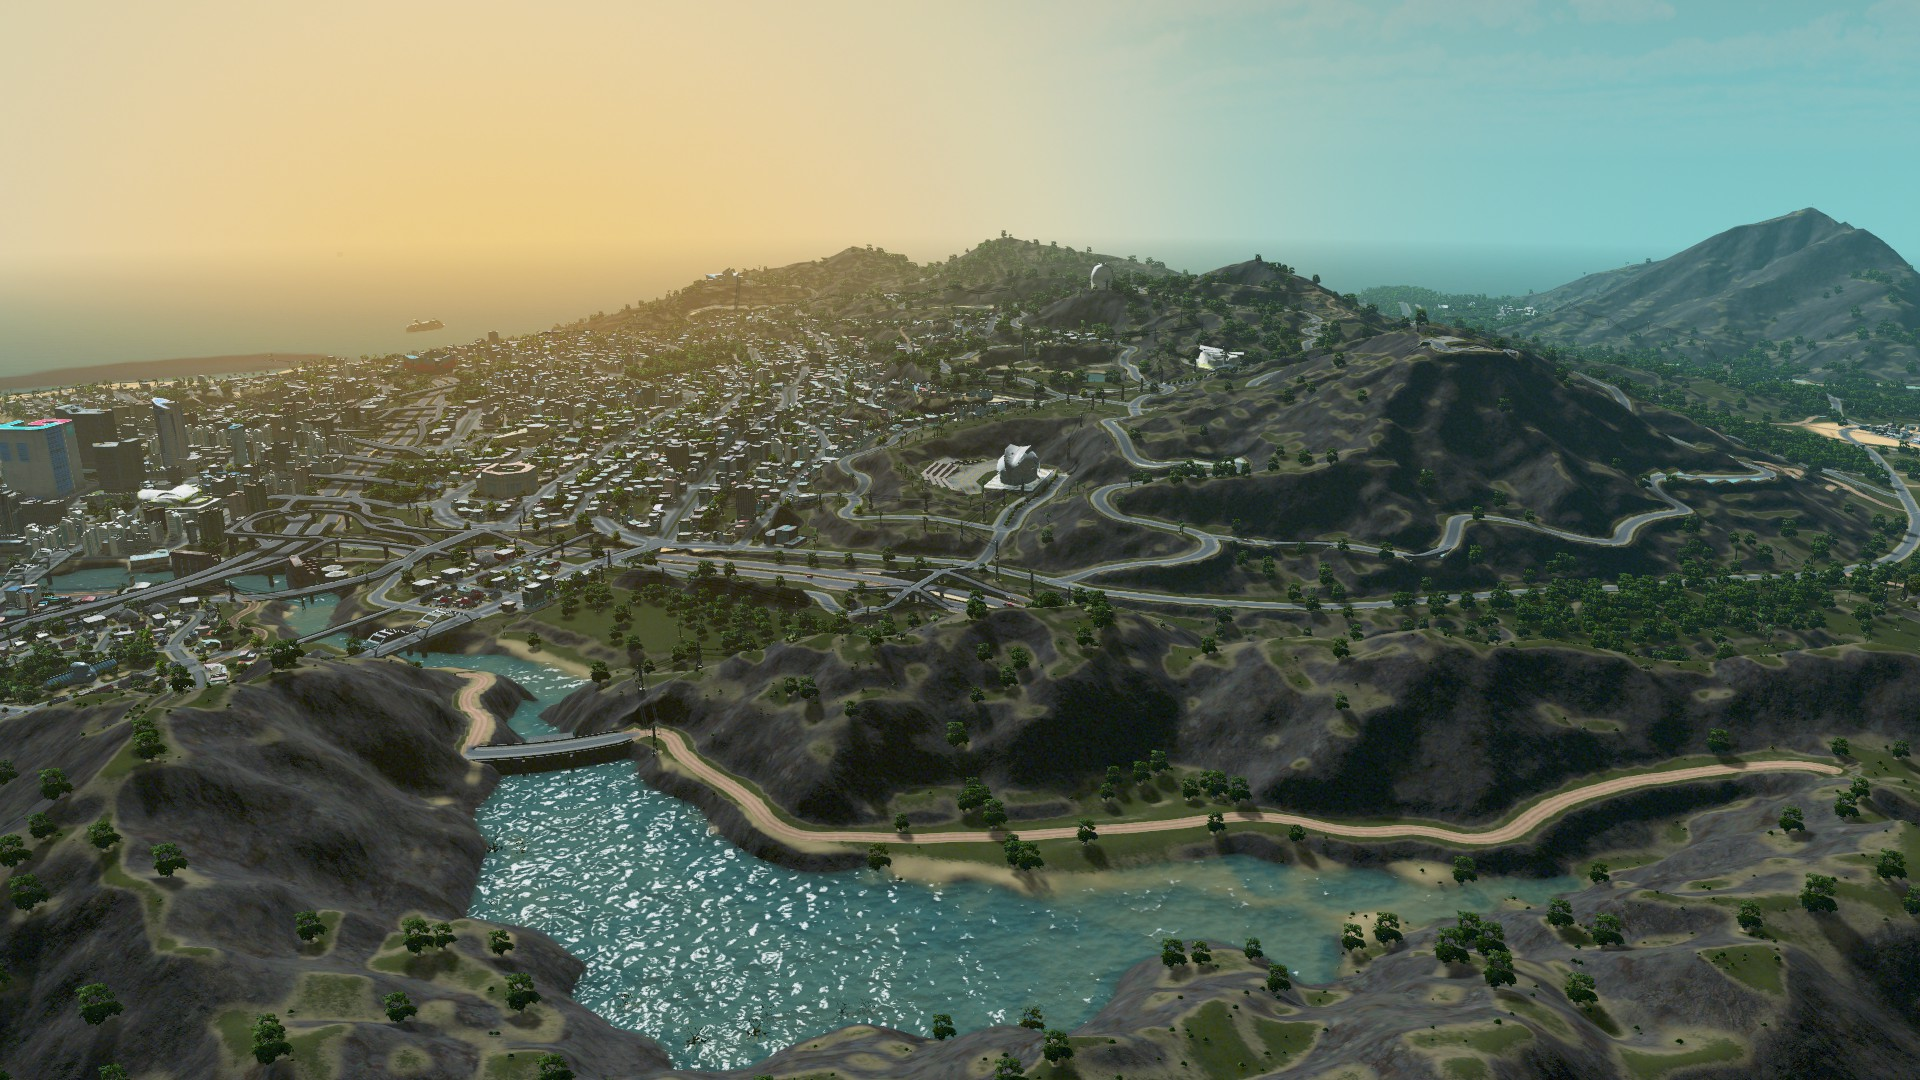 Gta 5 S Los Santos Recreated For Cities Skylines And It